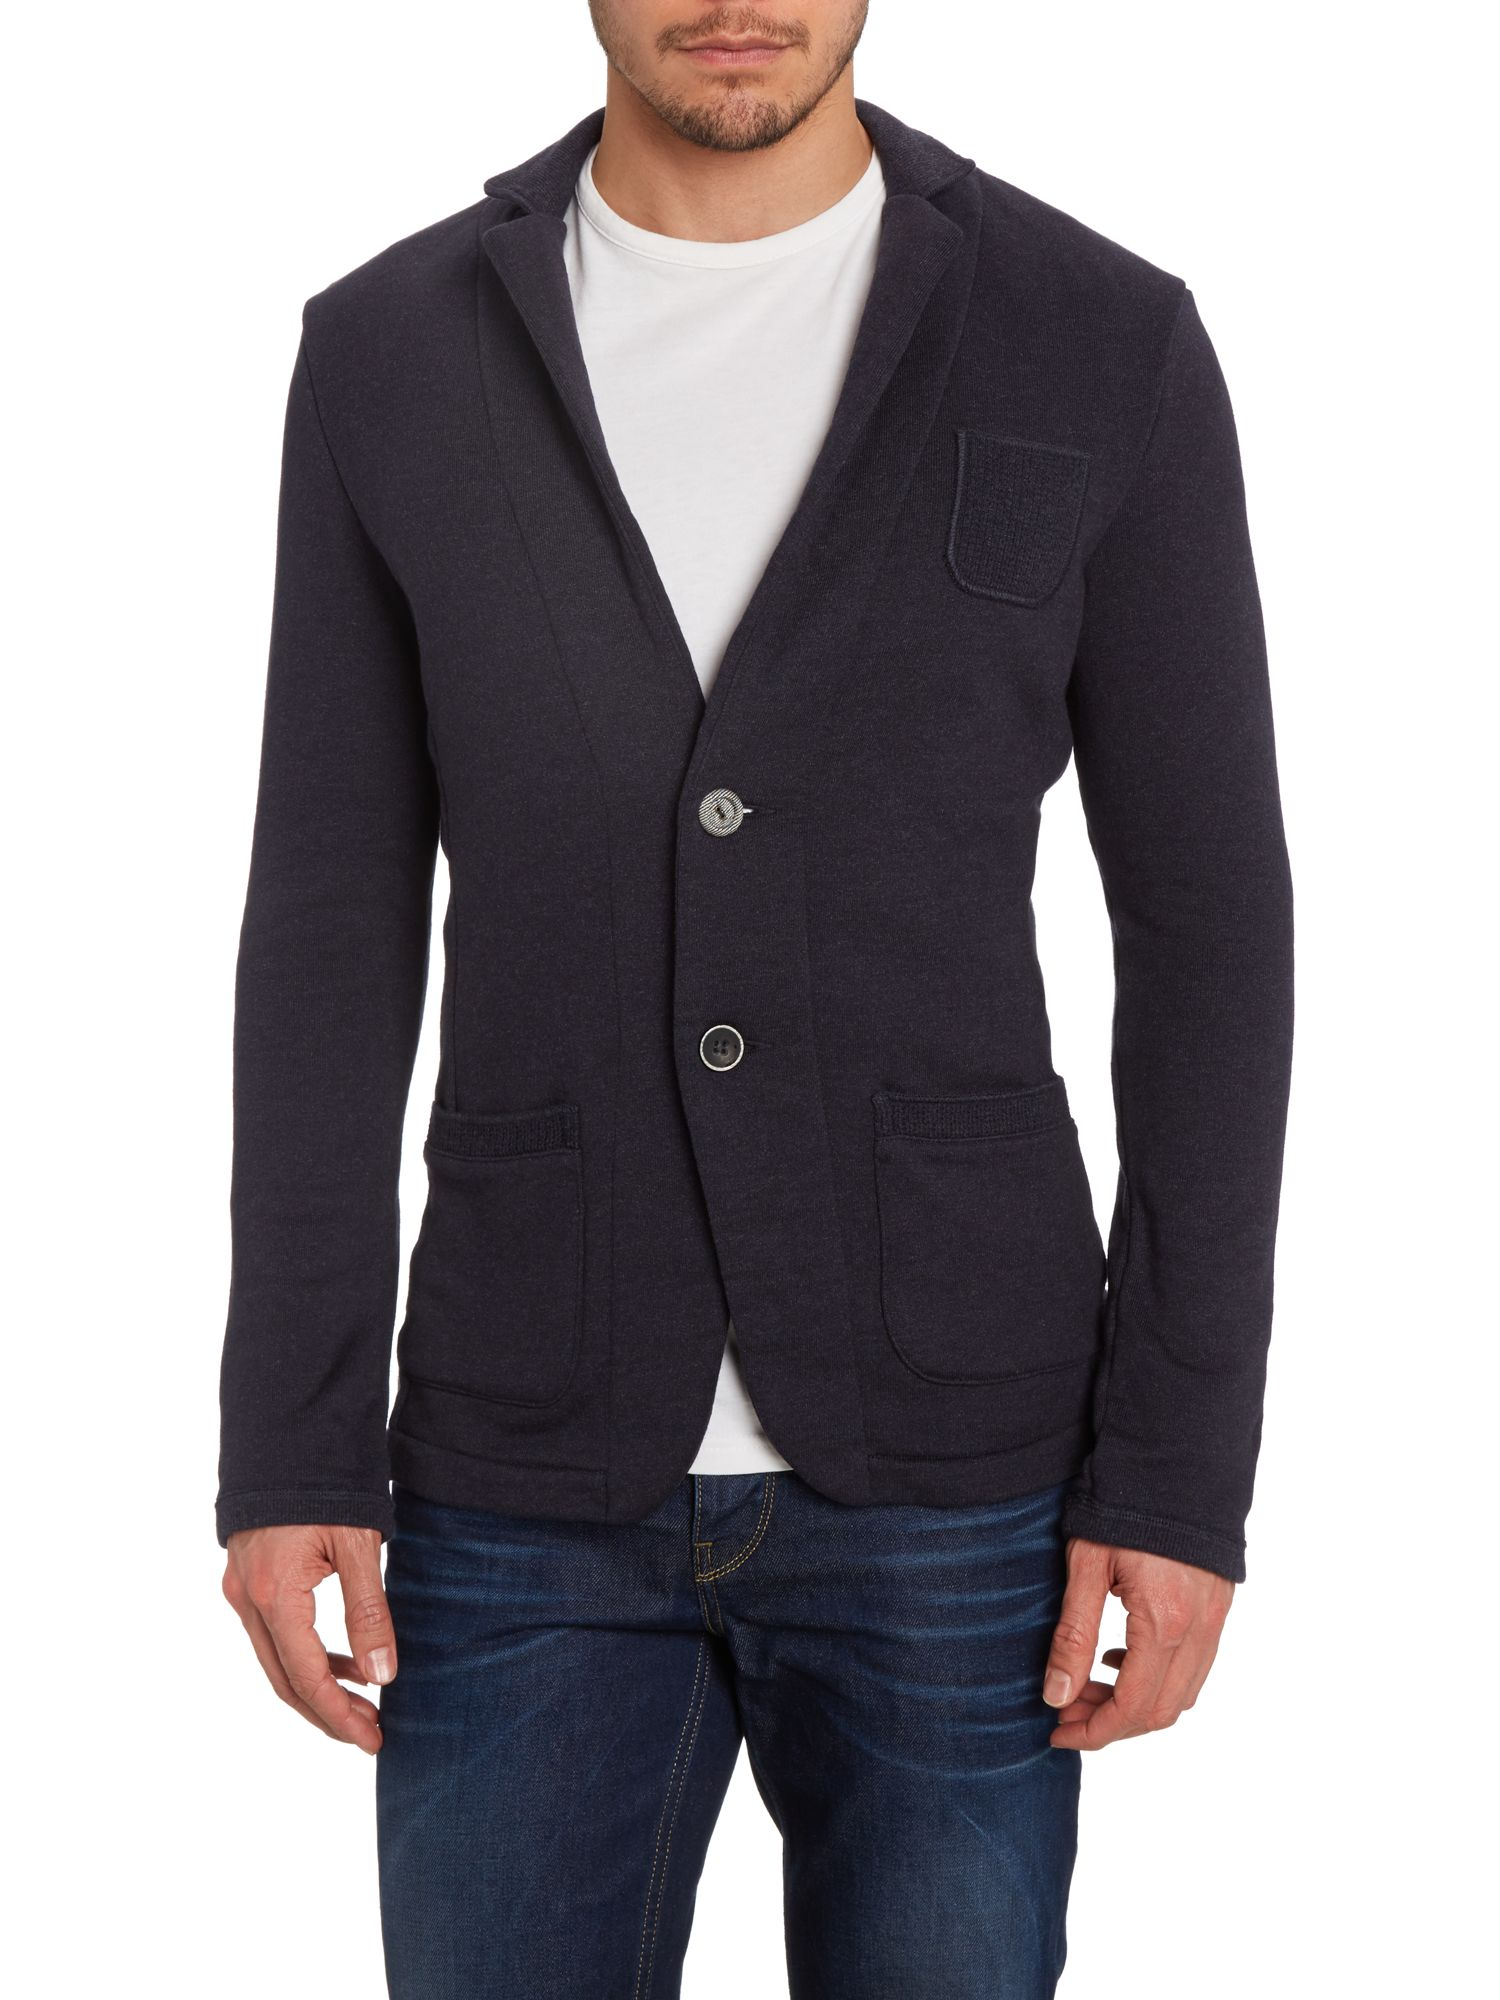 Three pocket jersey blazer